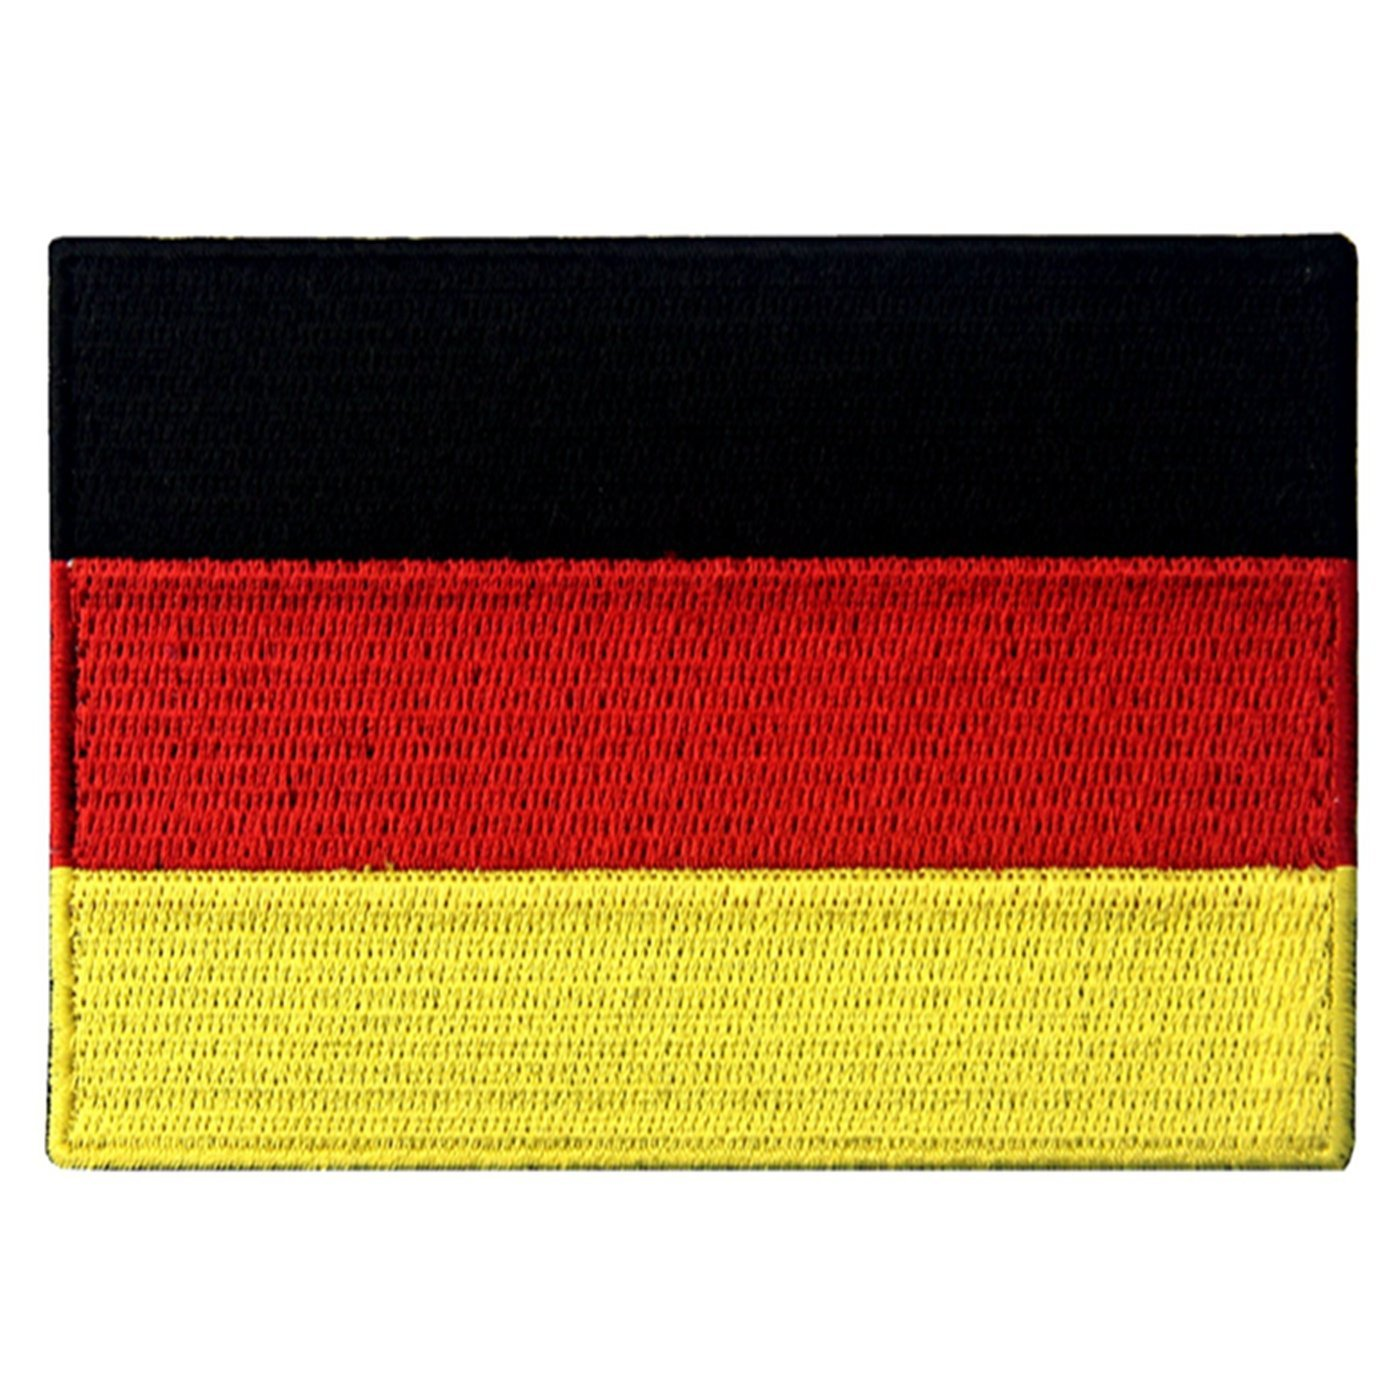 EmbTao Germany Flag Embroidered Emblem German Applique Iron On/Sew On Patch 4337020682